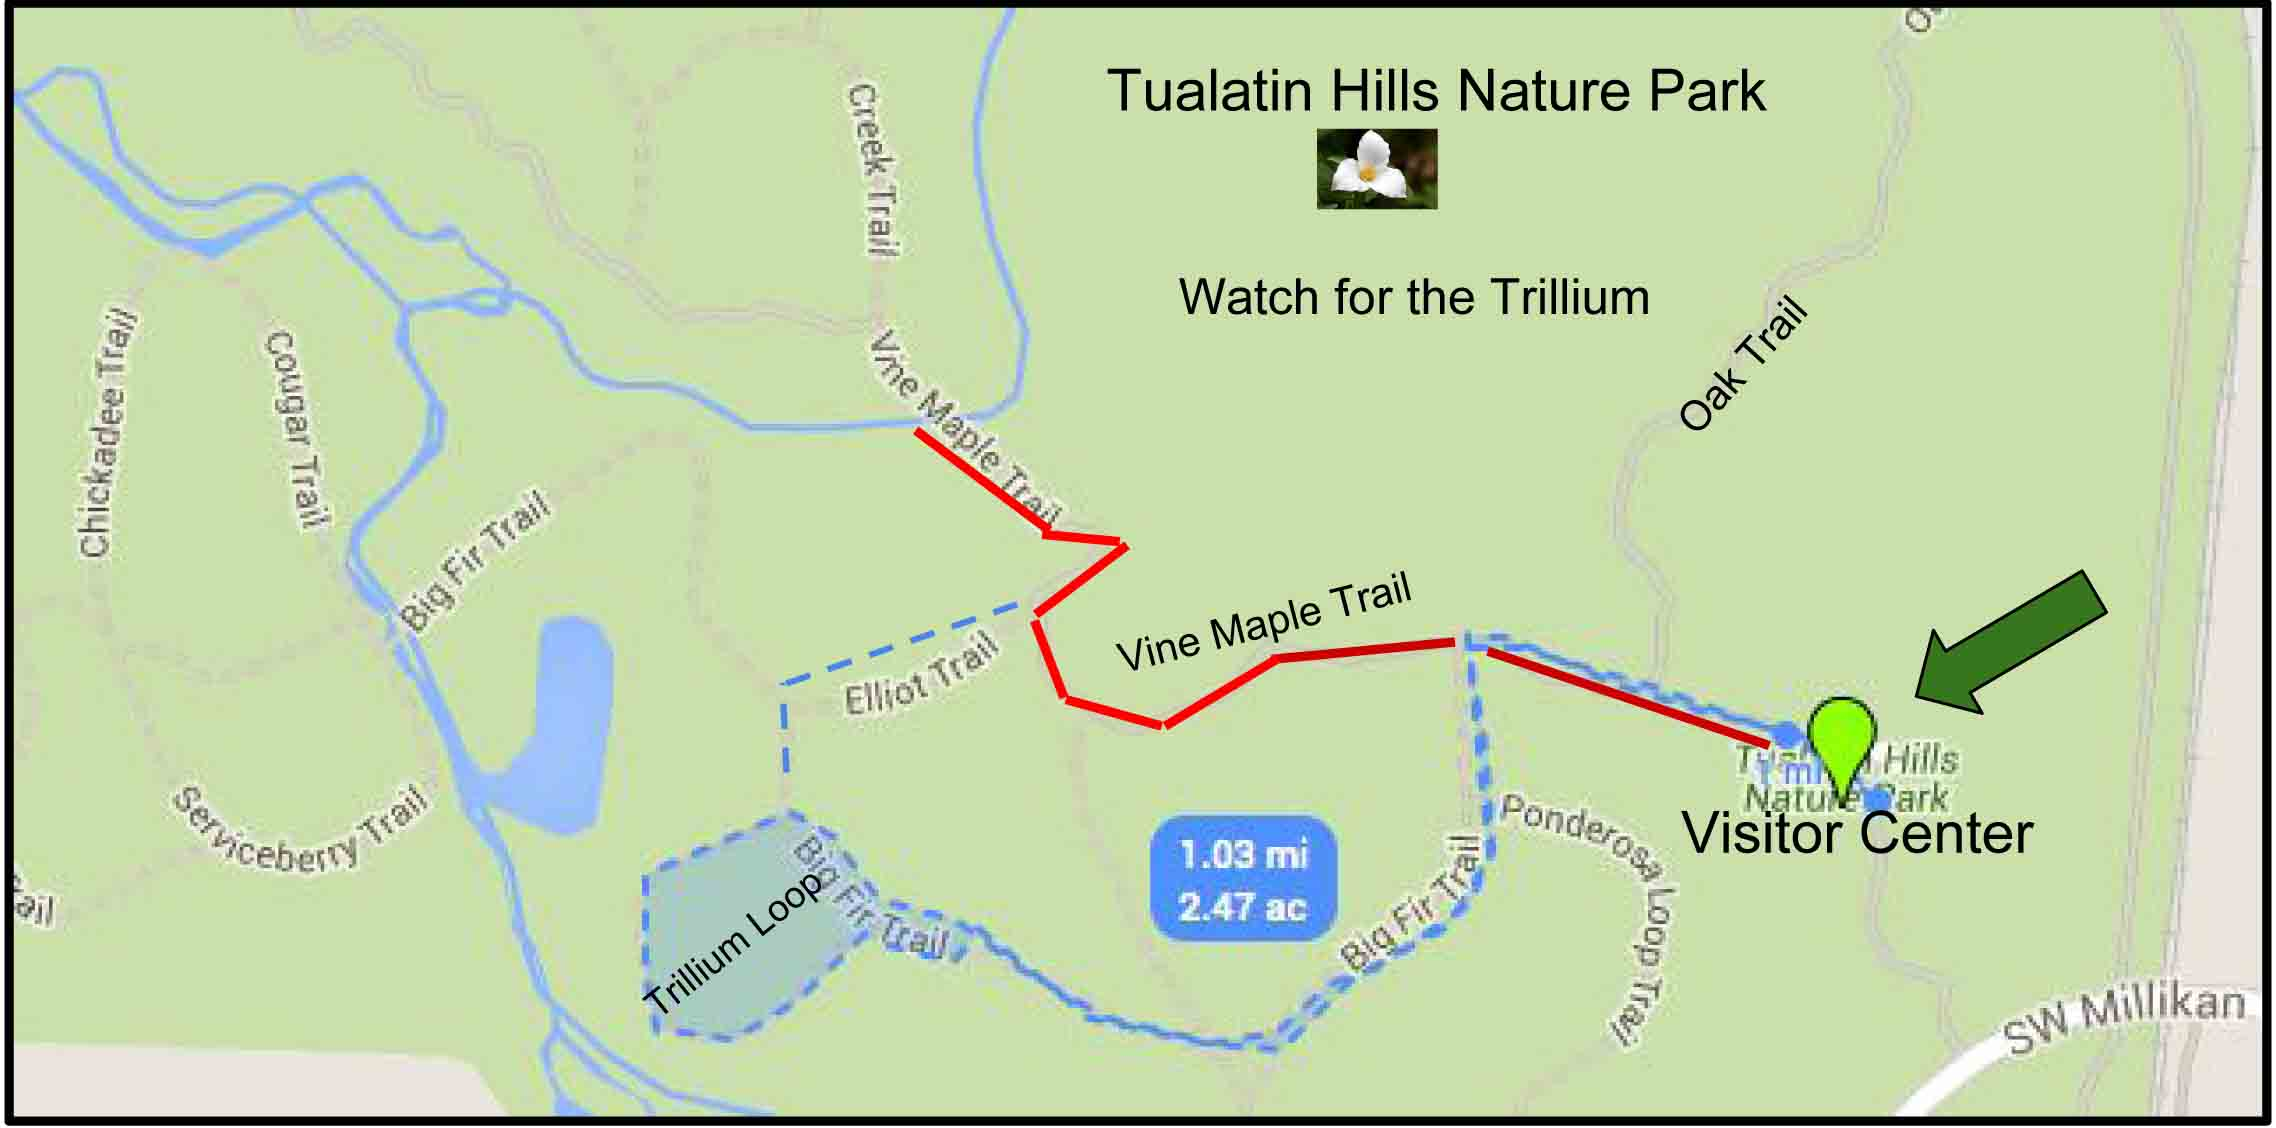 Tualatin Hill Nature Park map